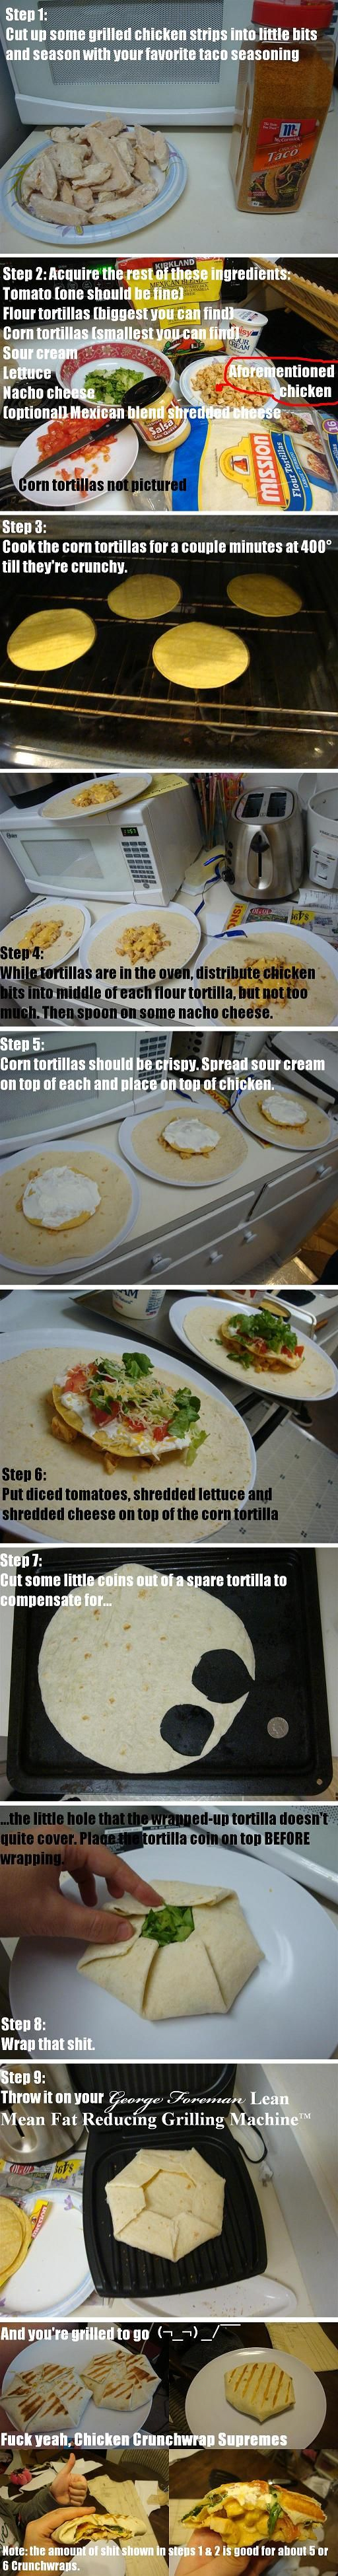 homemade Crunch Wrap Supremes! SO doing thisss